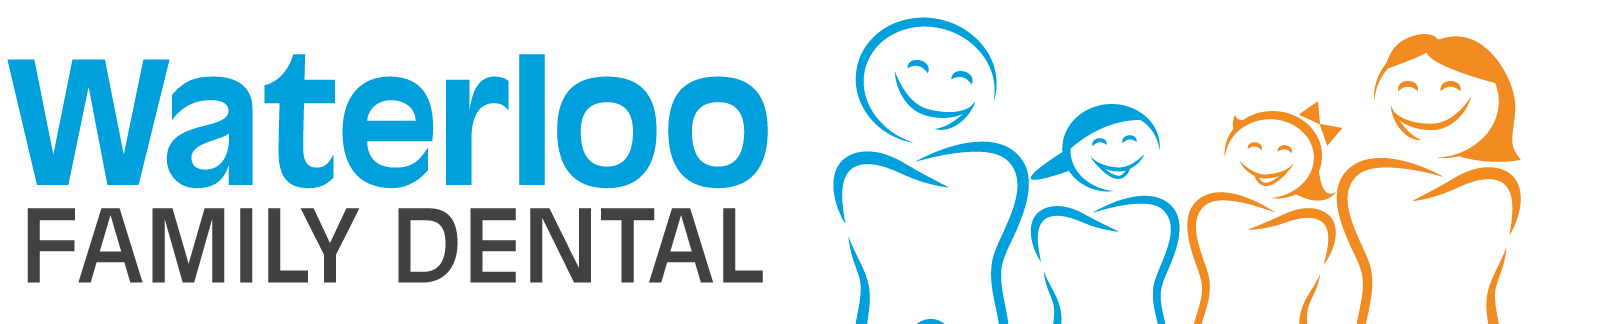 Waterloo Family Dental Logo